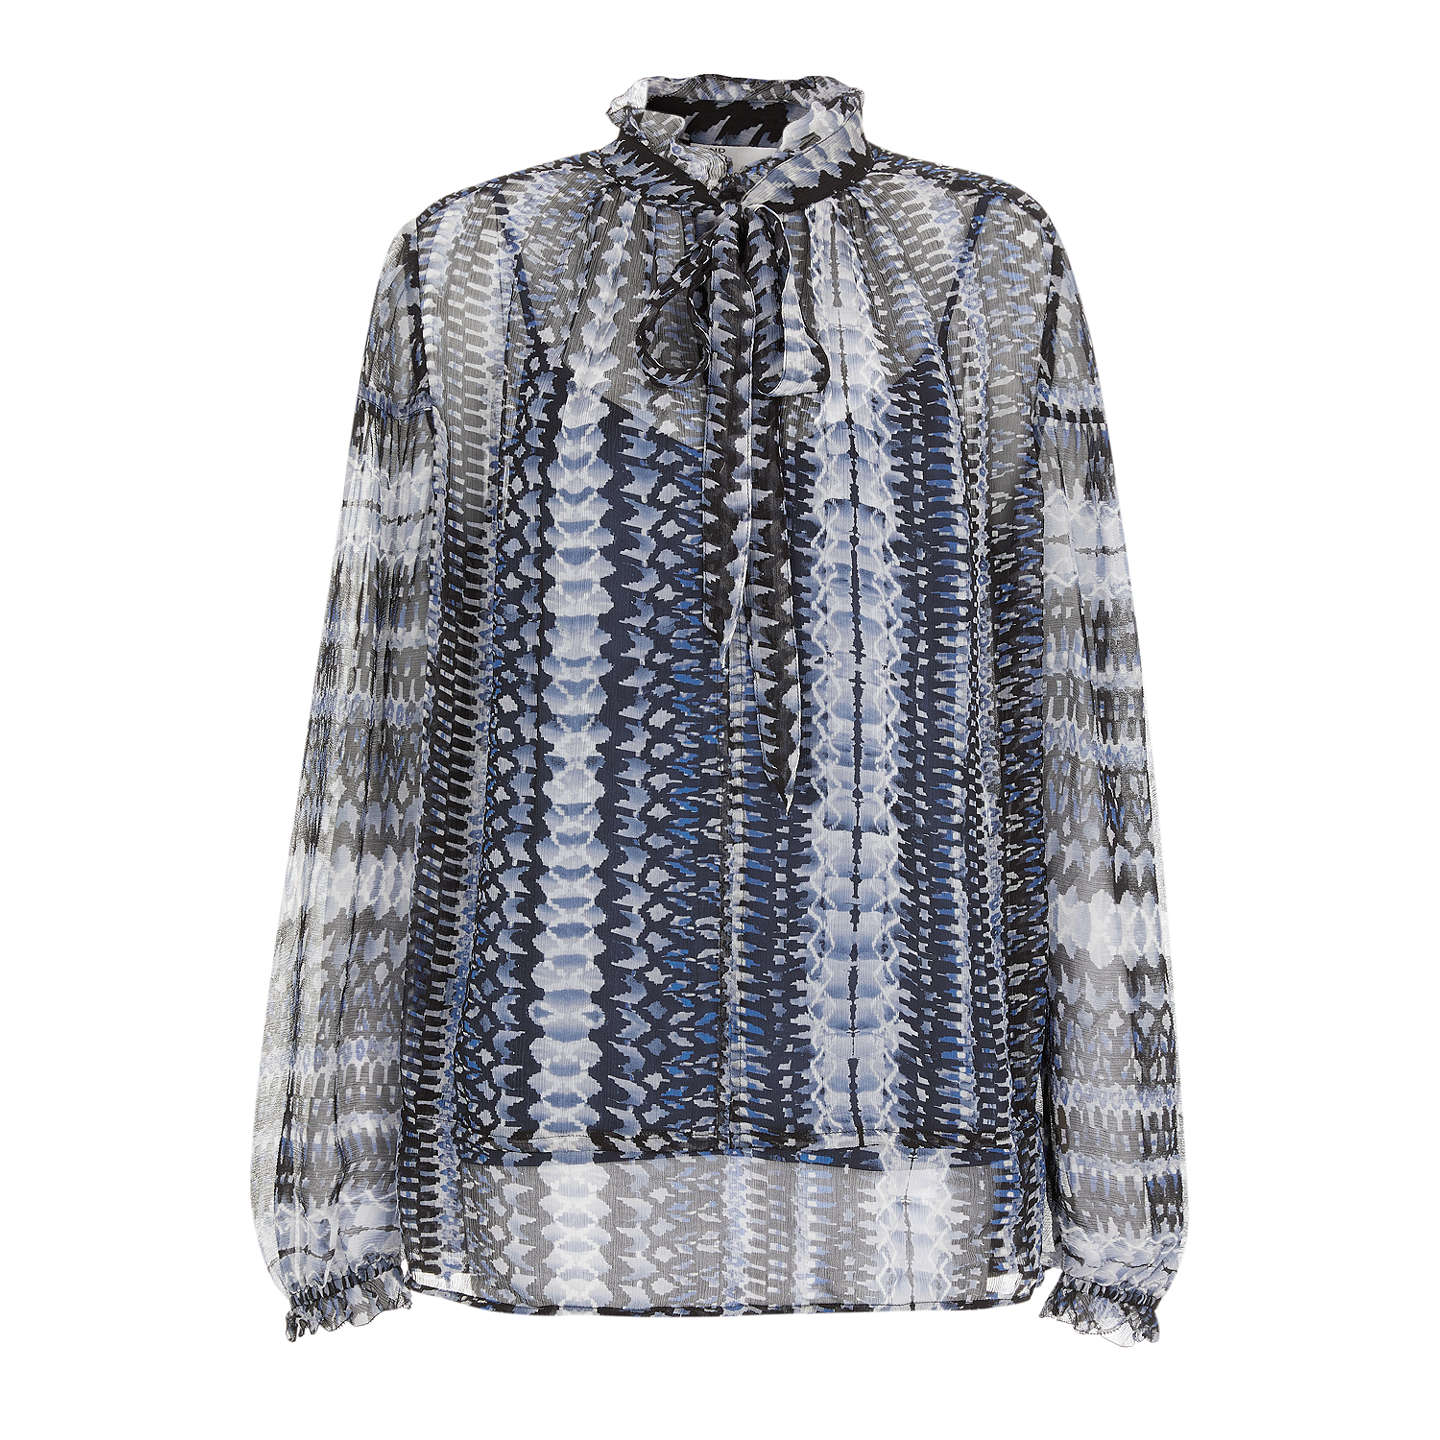 BuyAND/OR Francis Print Top, Blue/Multi, 8 Online at johnlewis.com